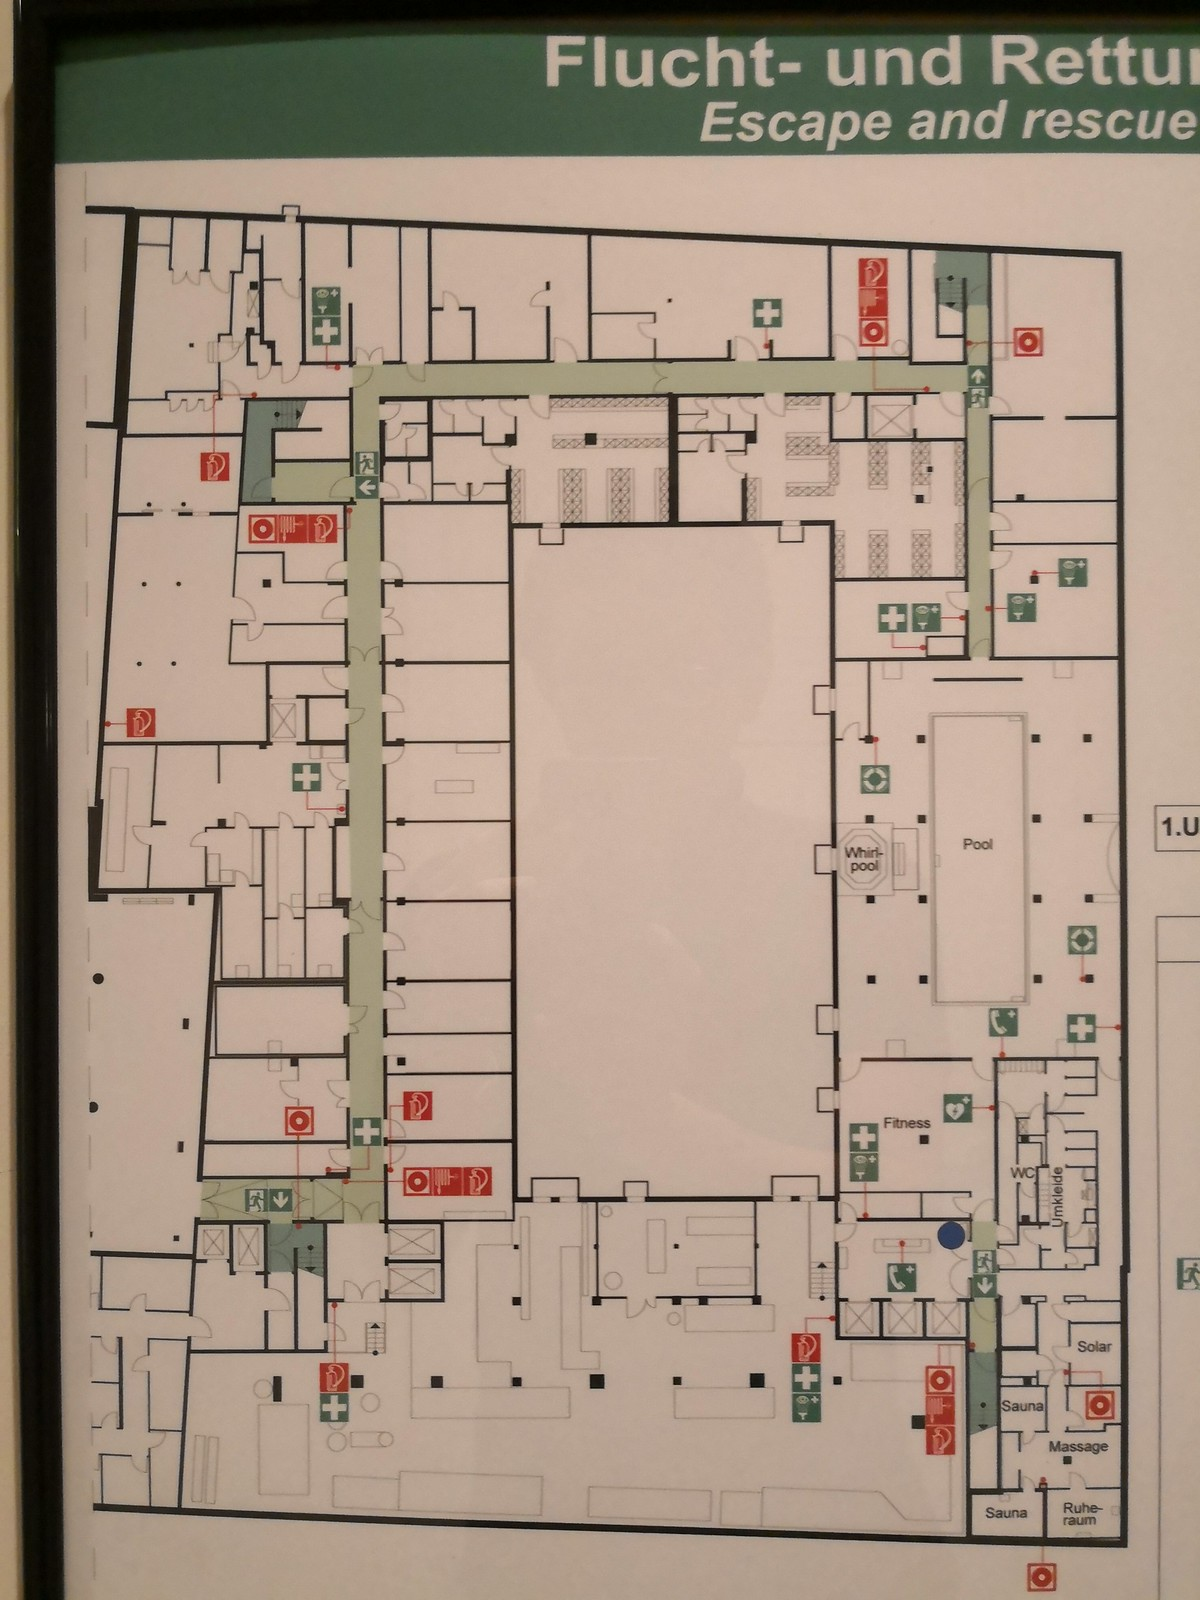 Floor plan of the Wellness area